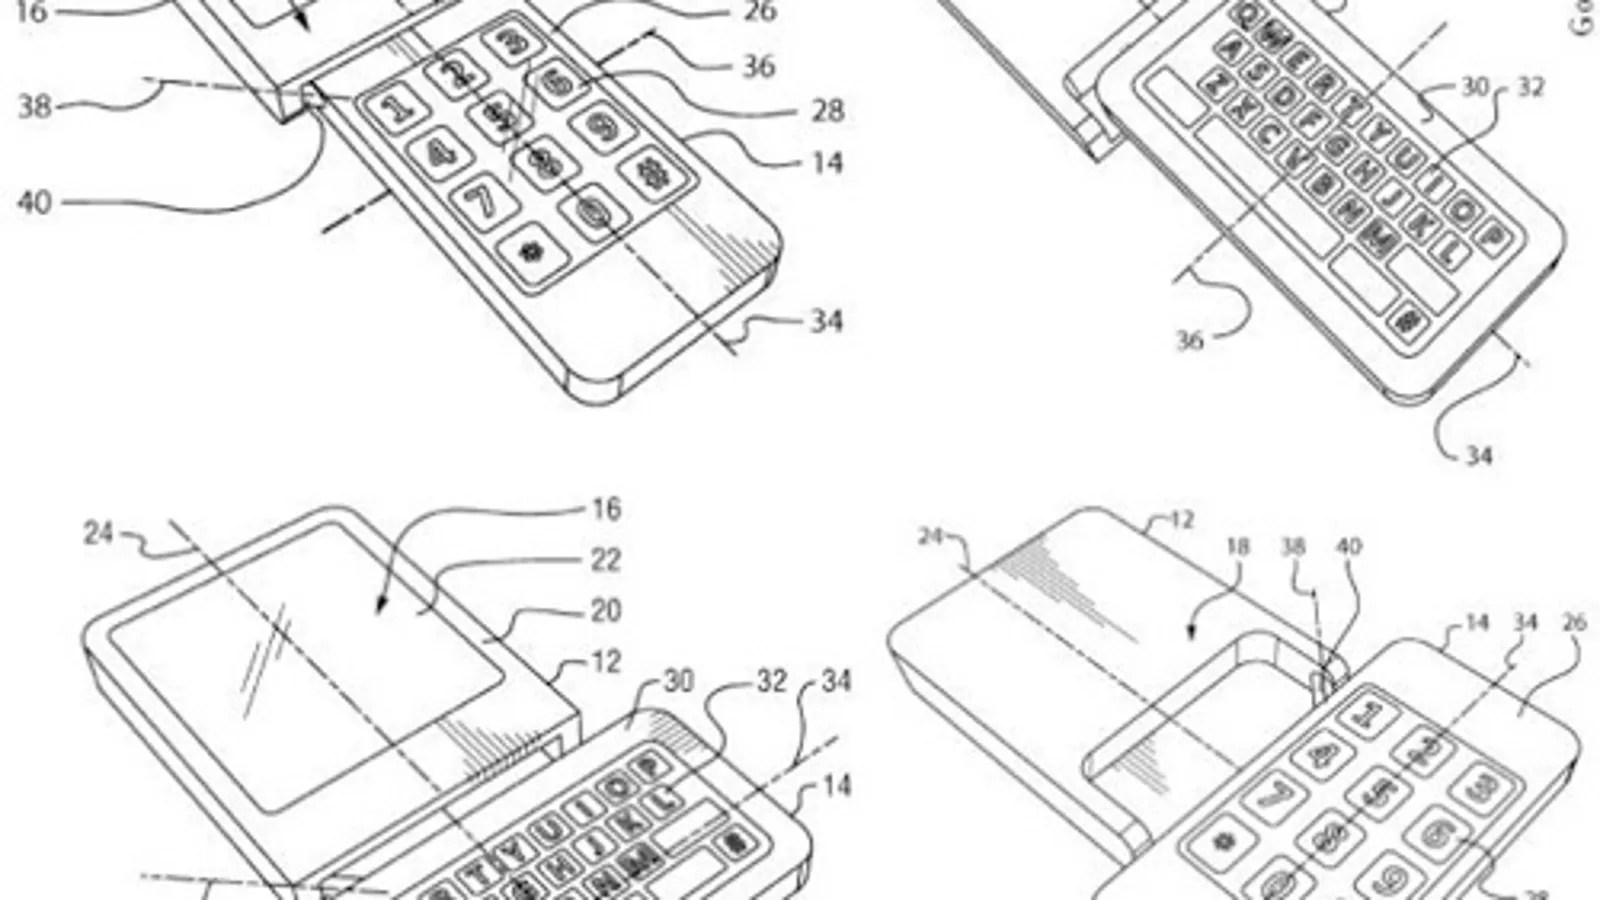 Rotating BlackBerry Phone Patent Makes My Eyes Bleed